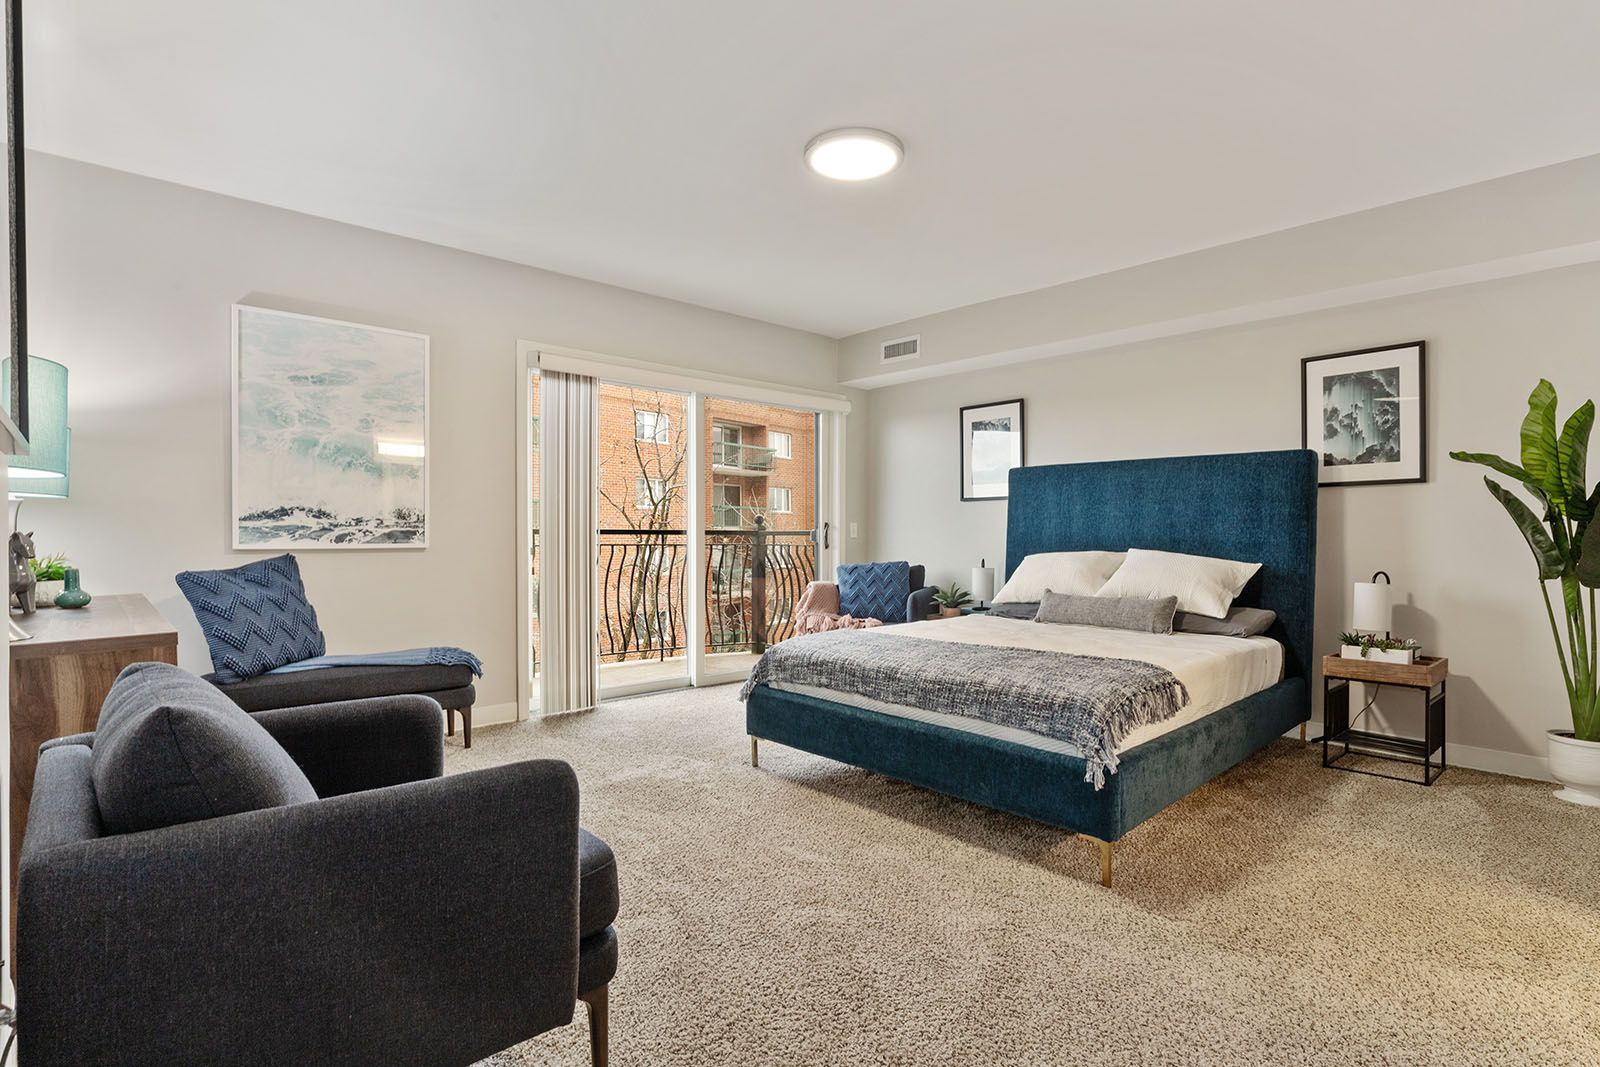 We Offer One And Two Bedroom Apartment Homes You Re Sure To Find A Floor Plan You Love Ren Bedroom Floor Plans Two Bedroom Apartments Looking For Apartments